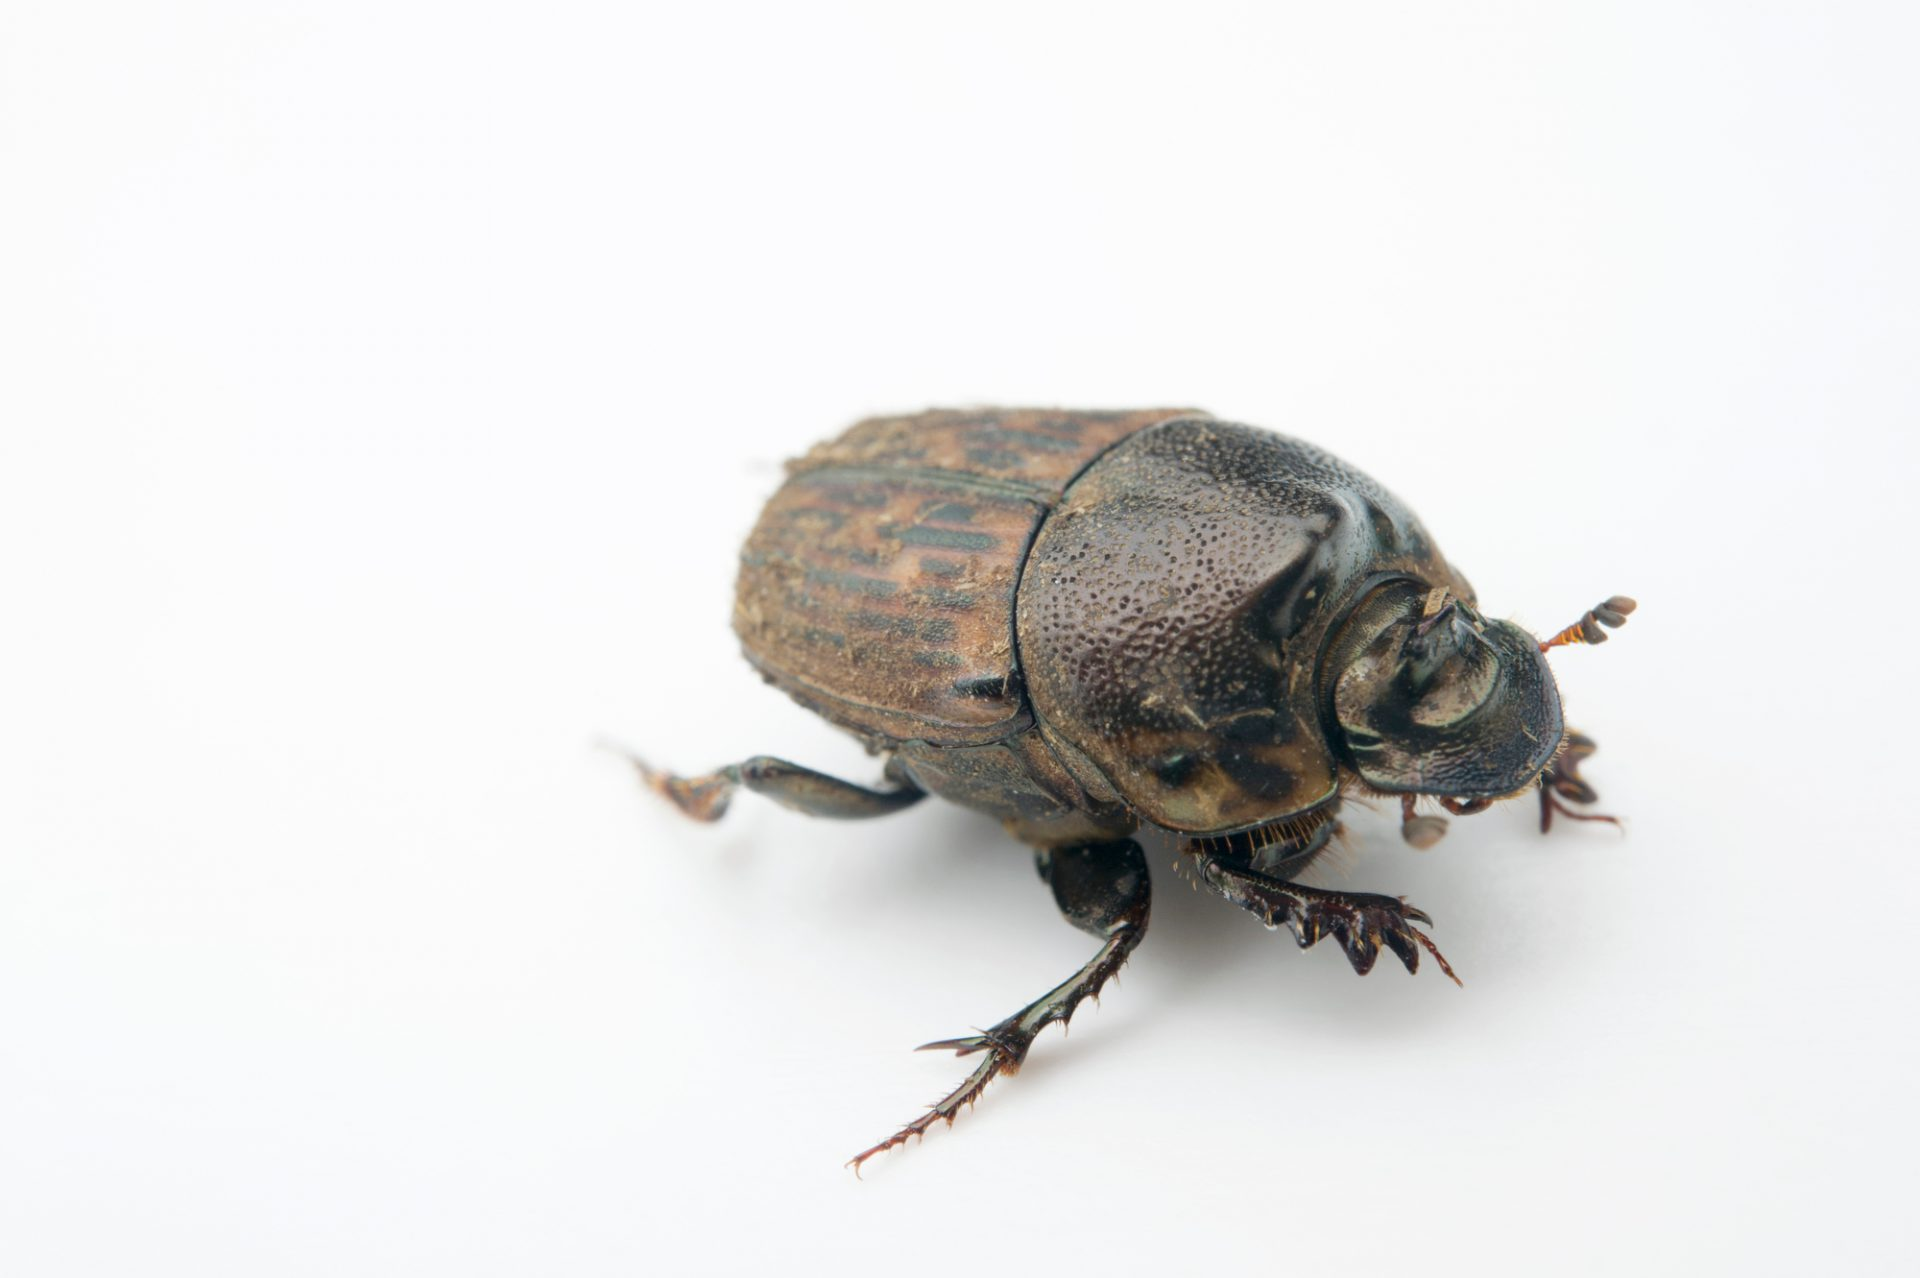 Photo: A dung beetle (Liatongus fulvostriatus) from the wild in Cameroon.